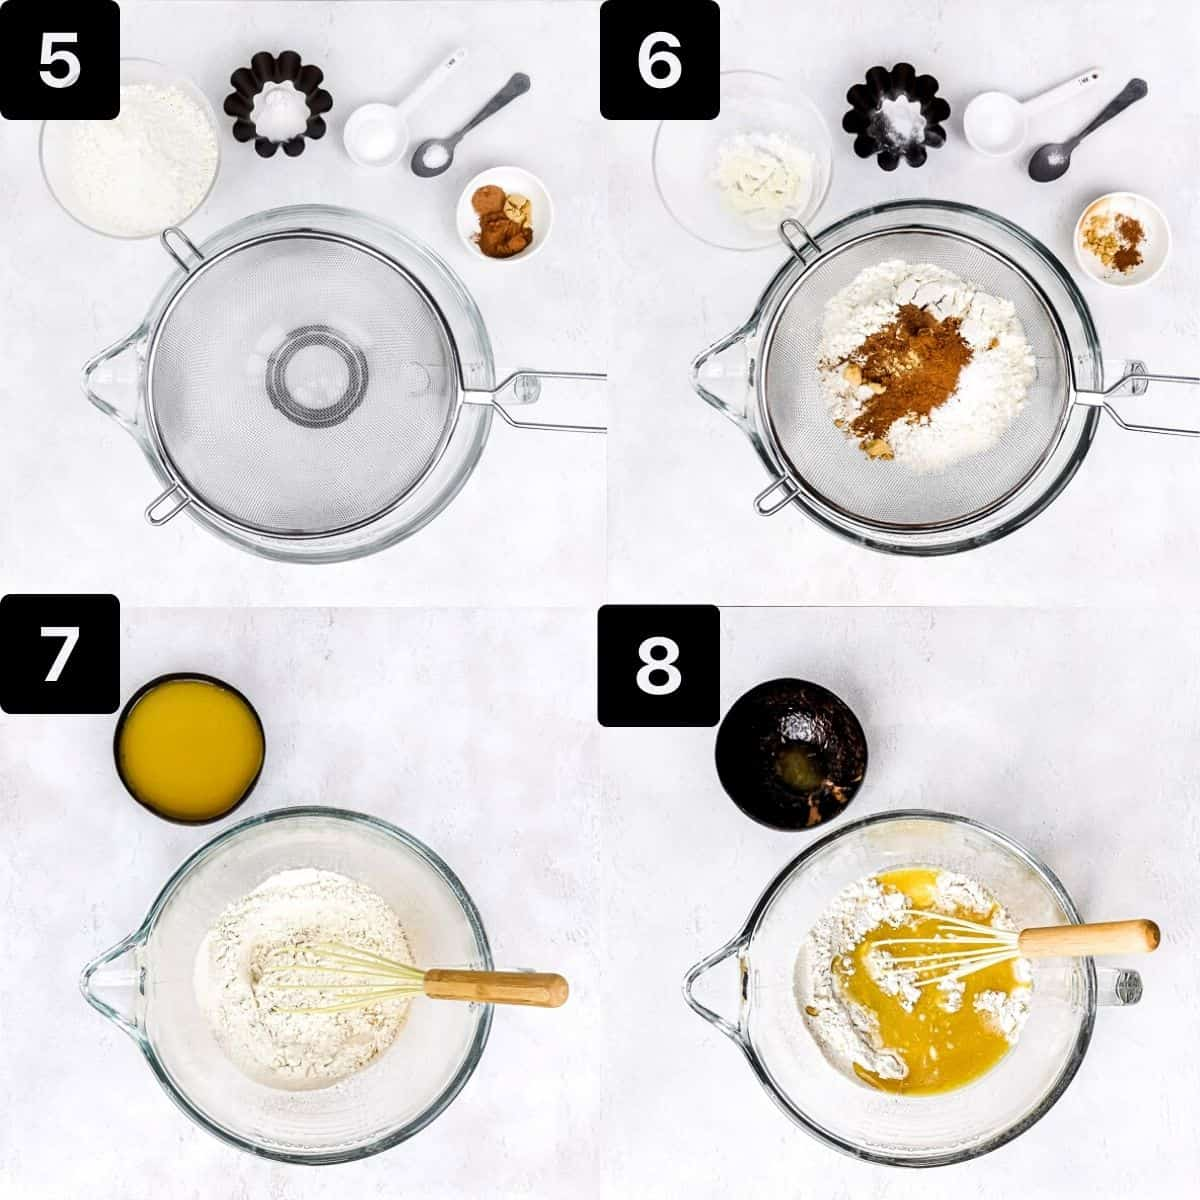 Step-by-step directions to mix the dry ingredients to make the carrot cake